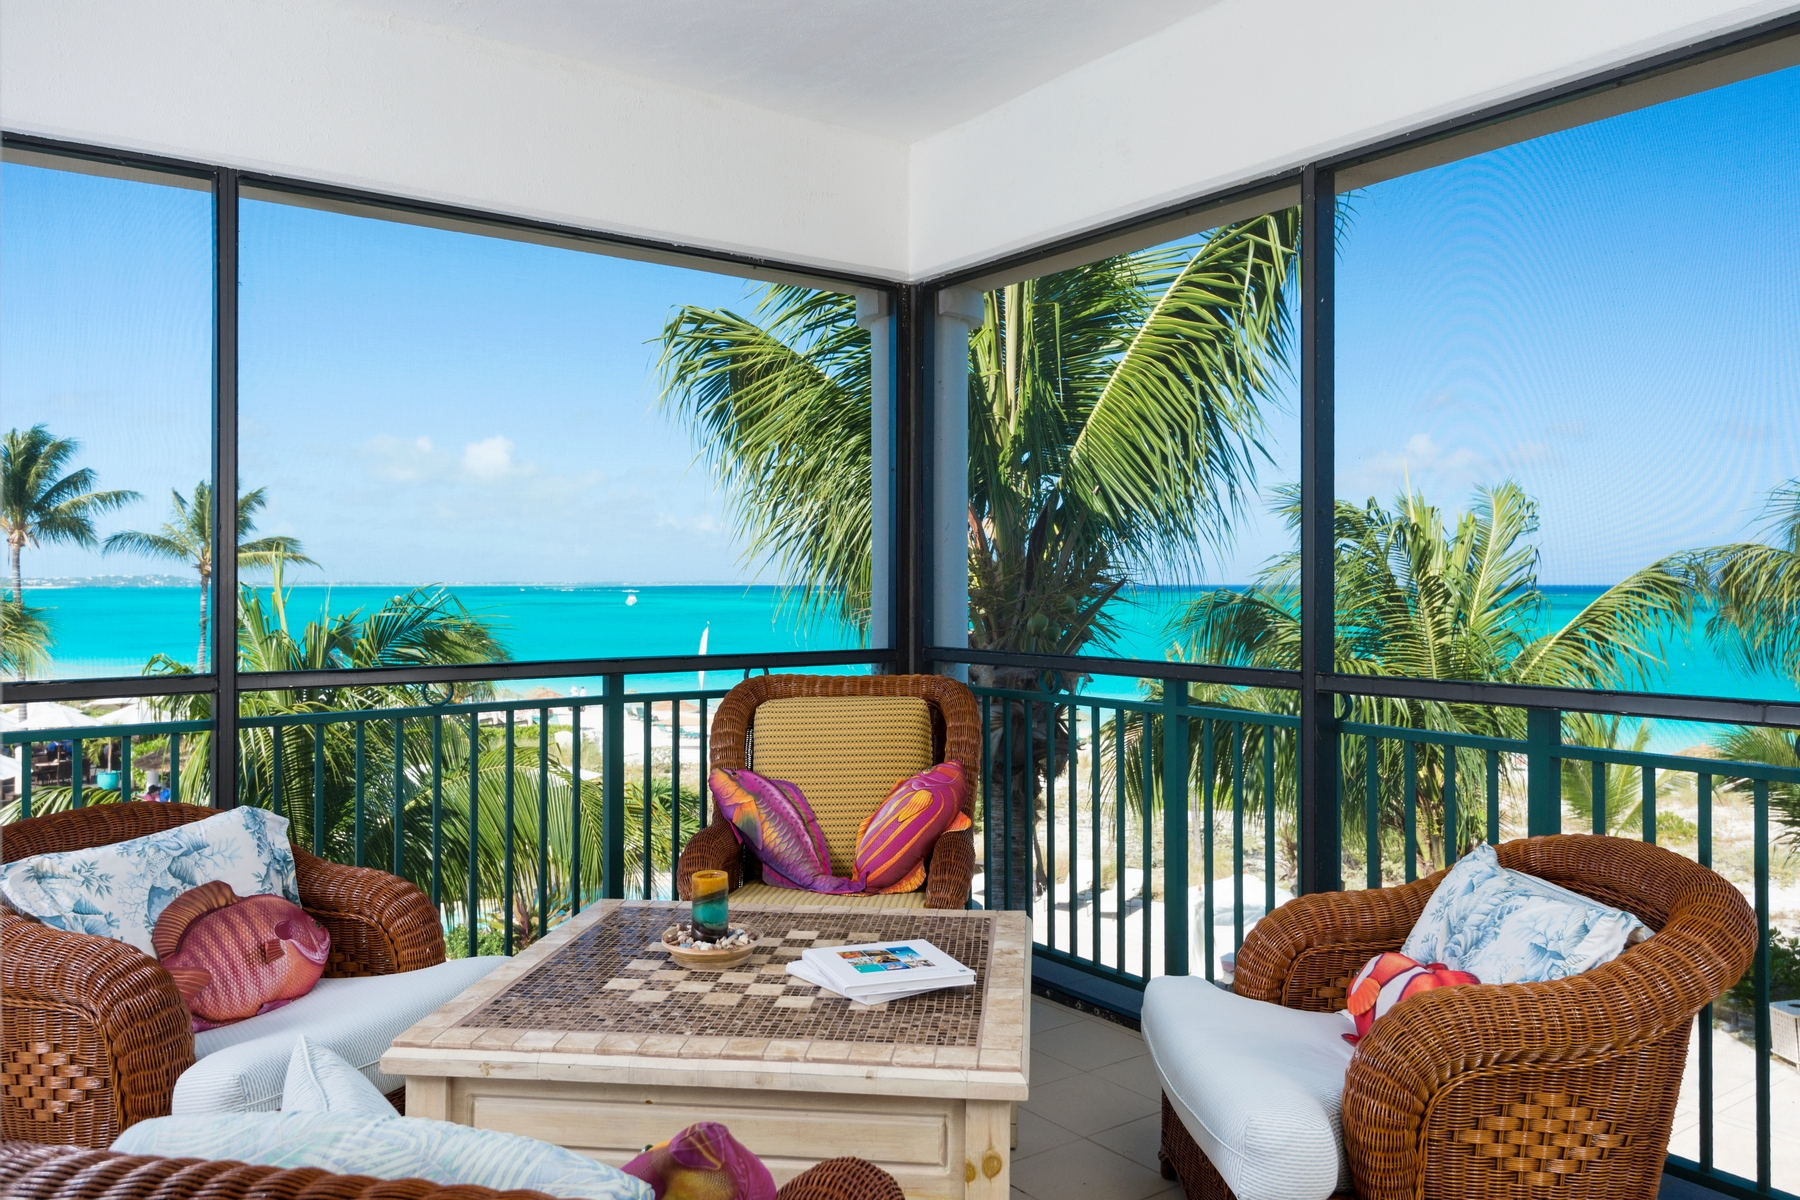 Condominium for Sale at The Sands Penthouse 330304 Beachfront Grace Bay, Providenciales, TC Turks And Caicos Islands